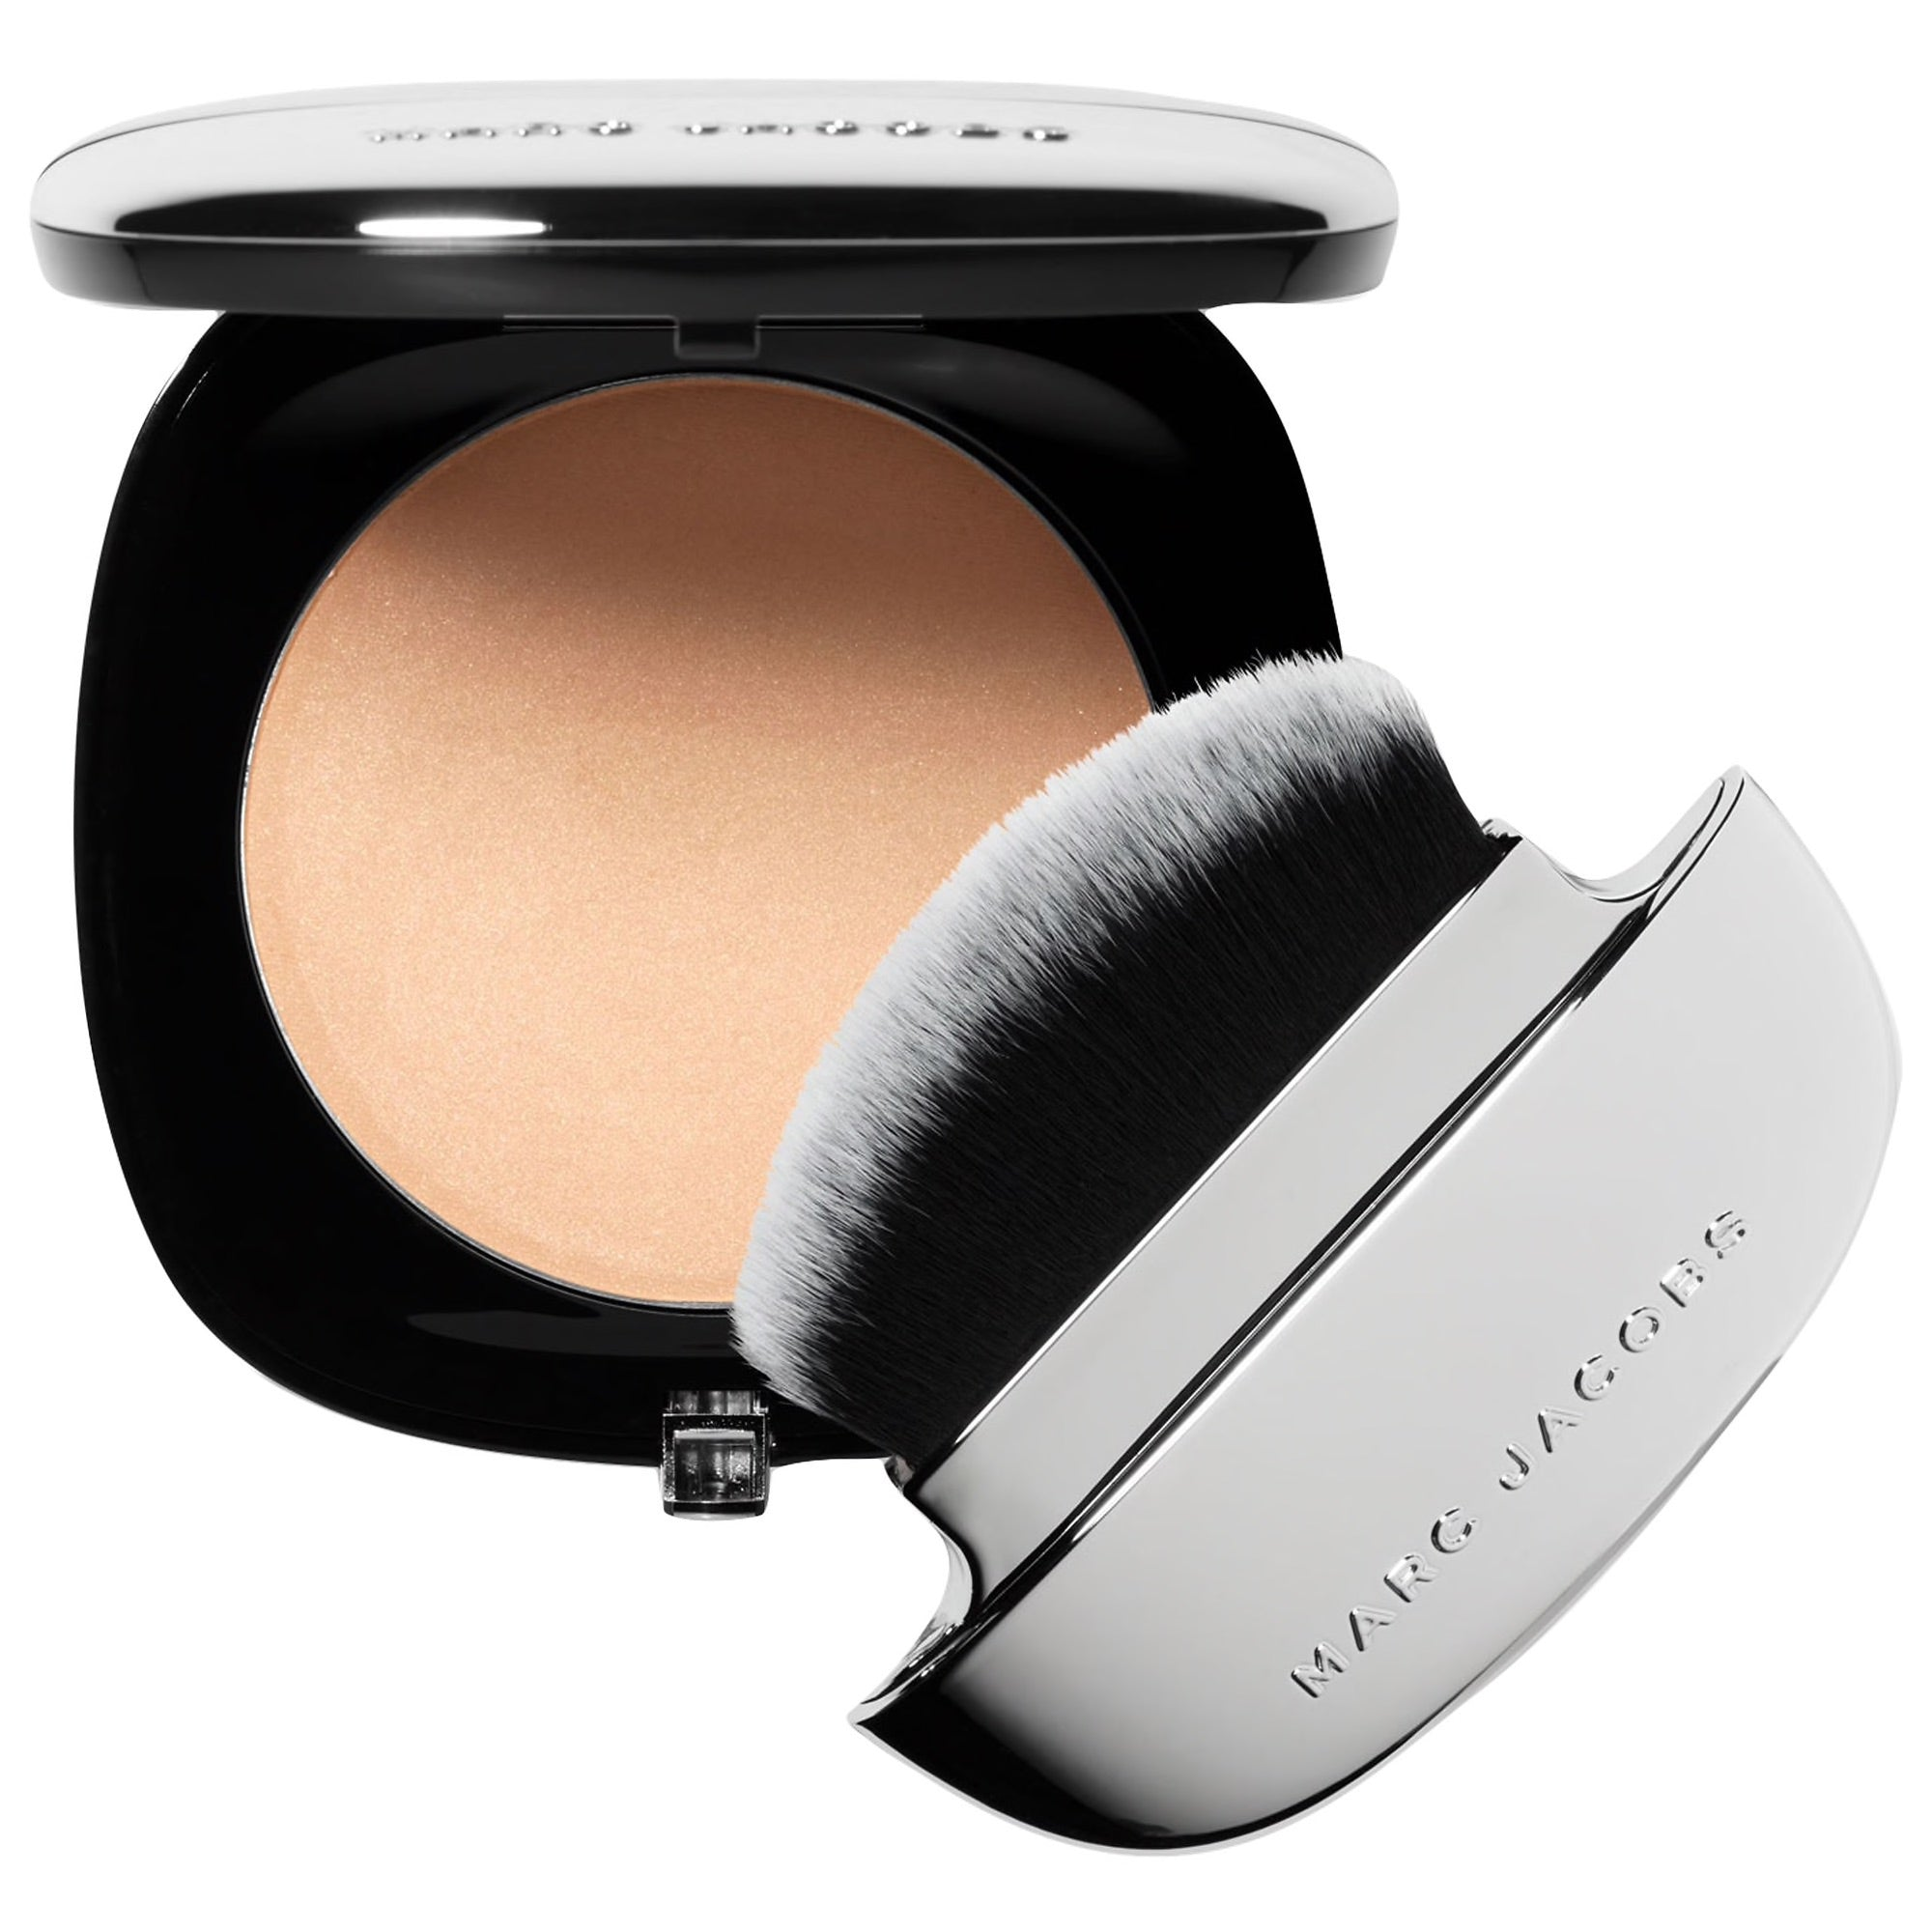 WHOLESALE MARC JACOBS ACCOMPLICE INSTANT BLURRING BEAUTY POWDER WITH BRUSH 0.35 OZ - INGENUE 50 - 48 PIECE LOT